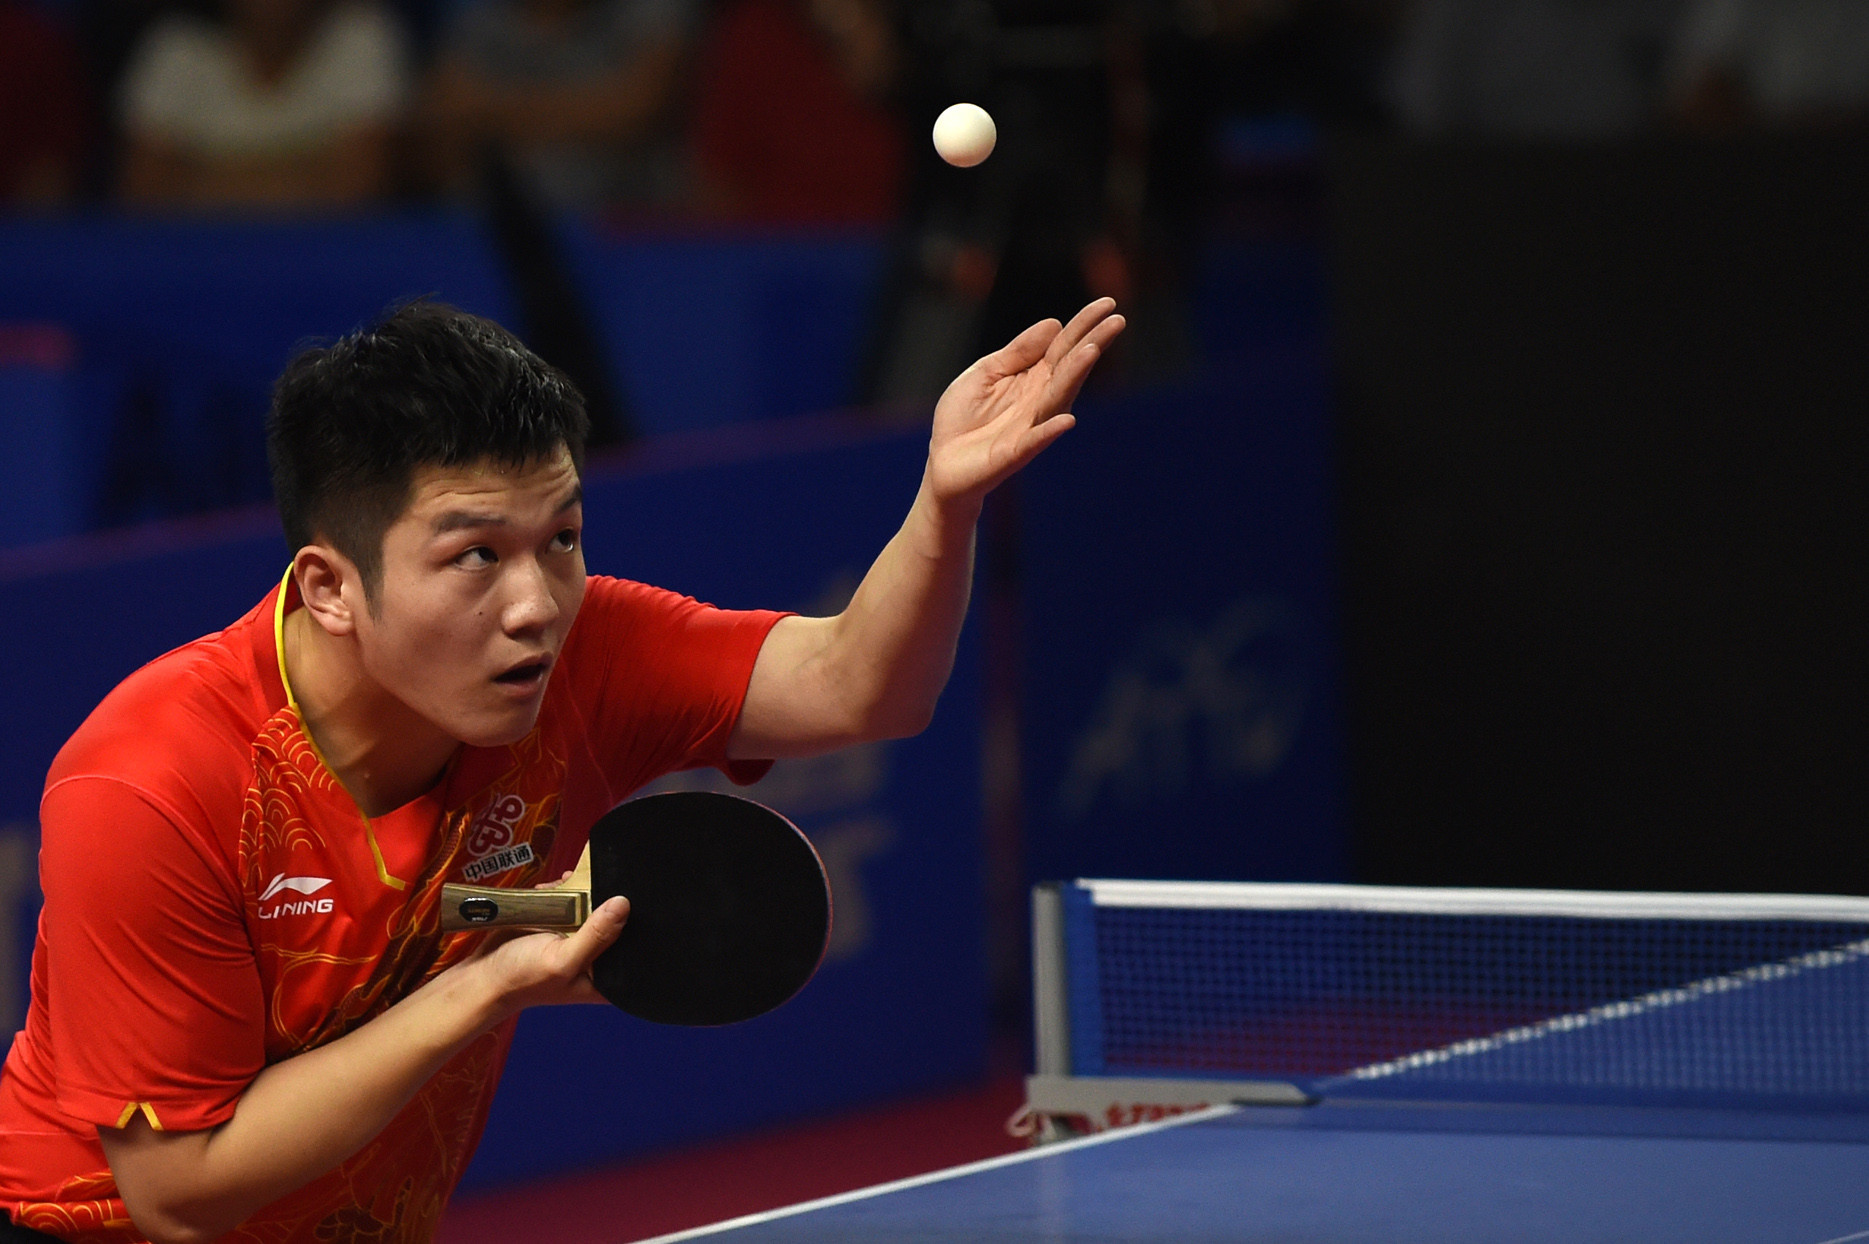 Fan and Chen target Chinese double at ITTF Hungarian Open